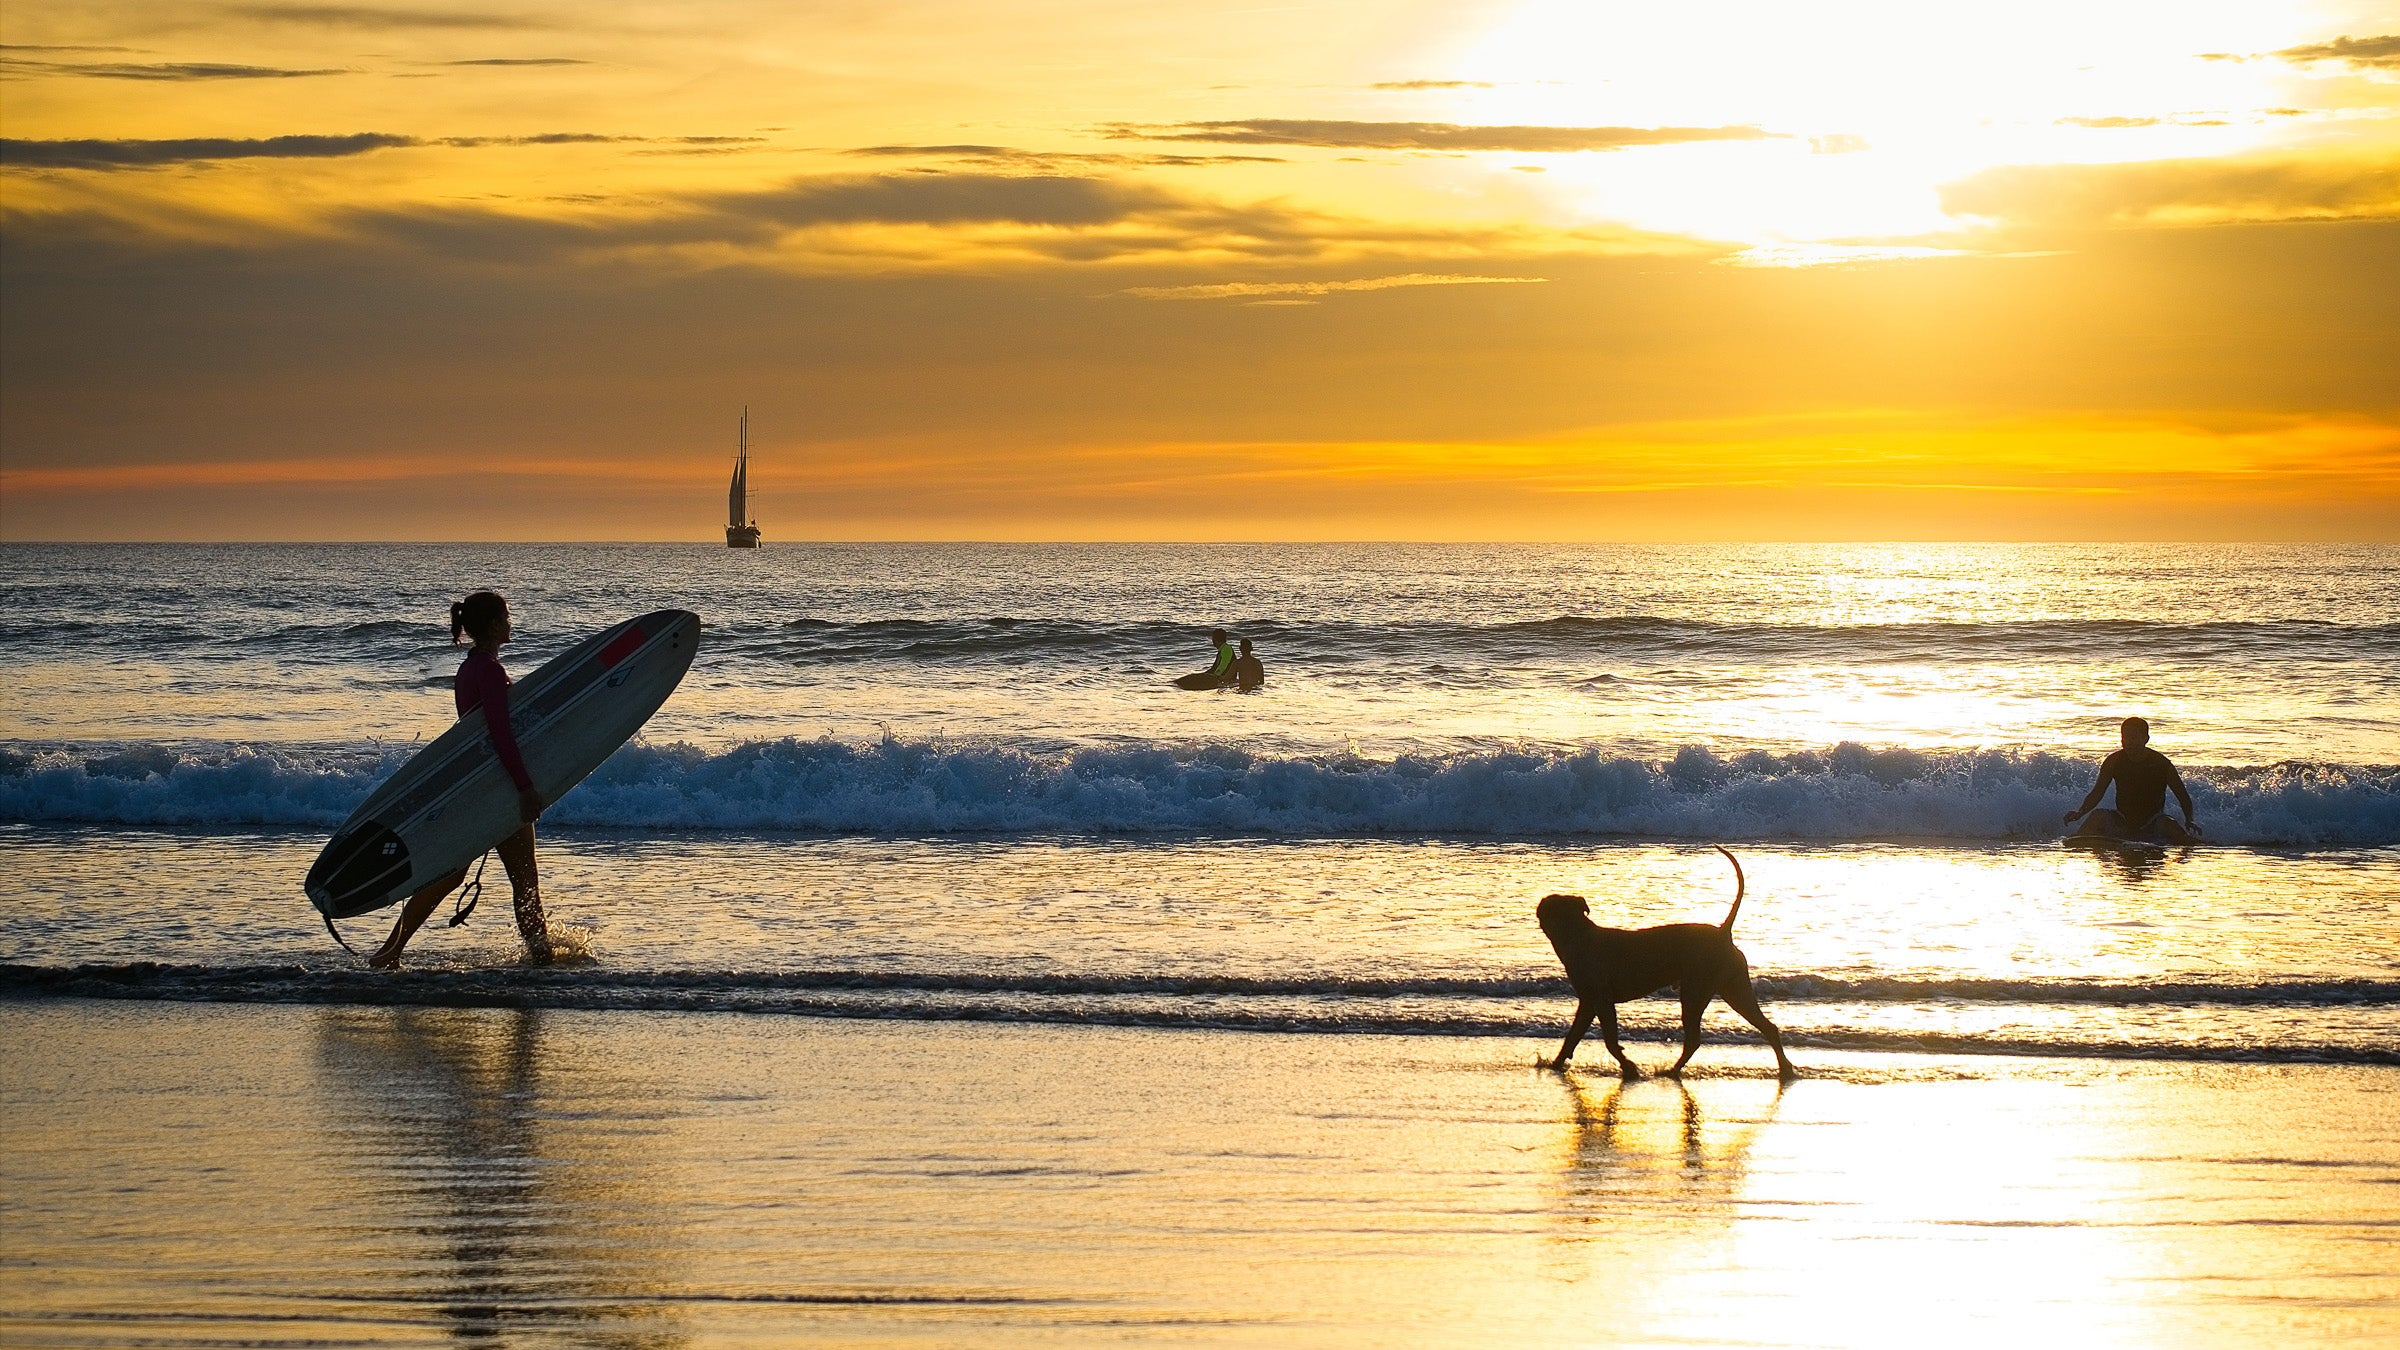 Surfer and a dog on Costa Rican beach at sunset